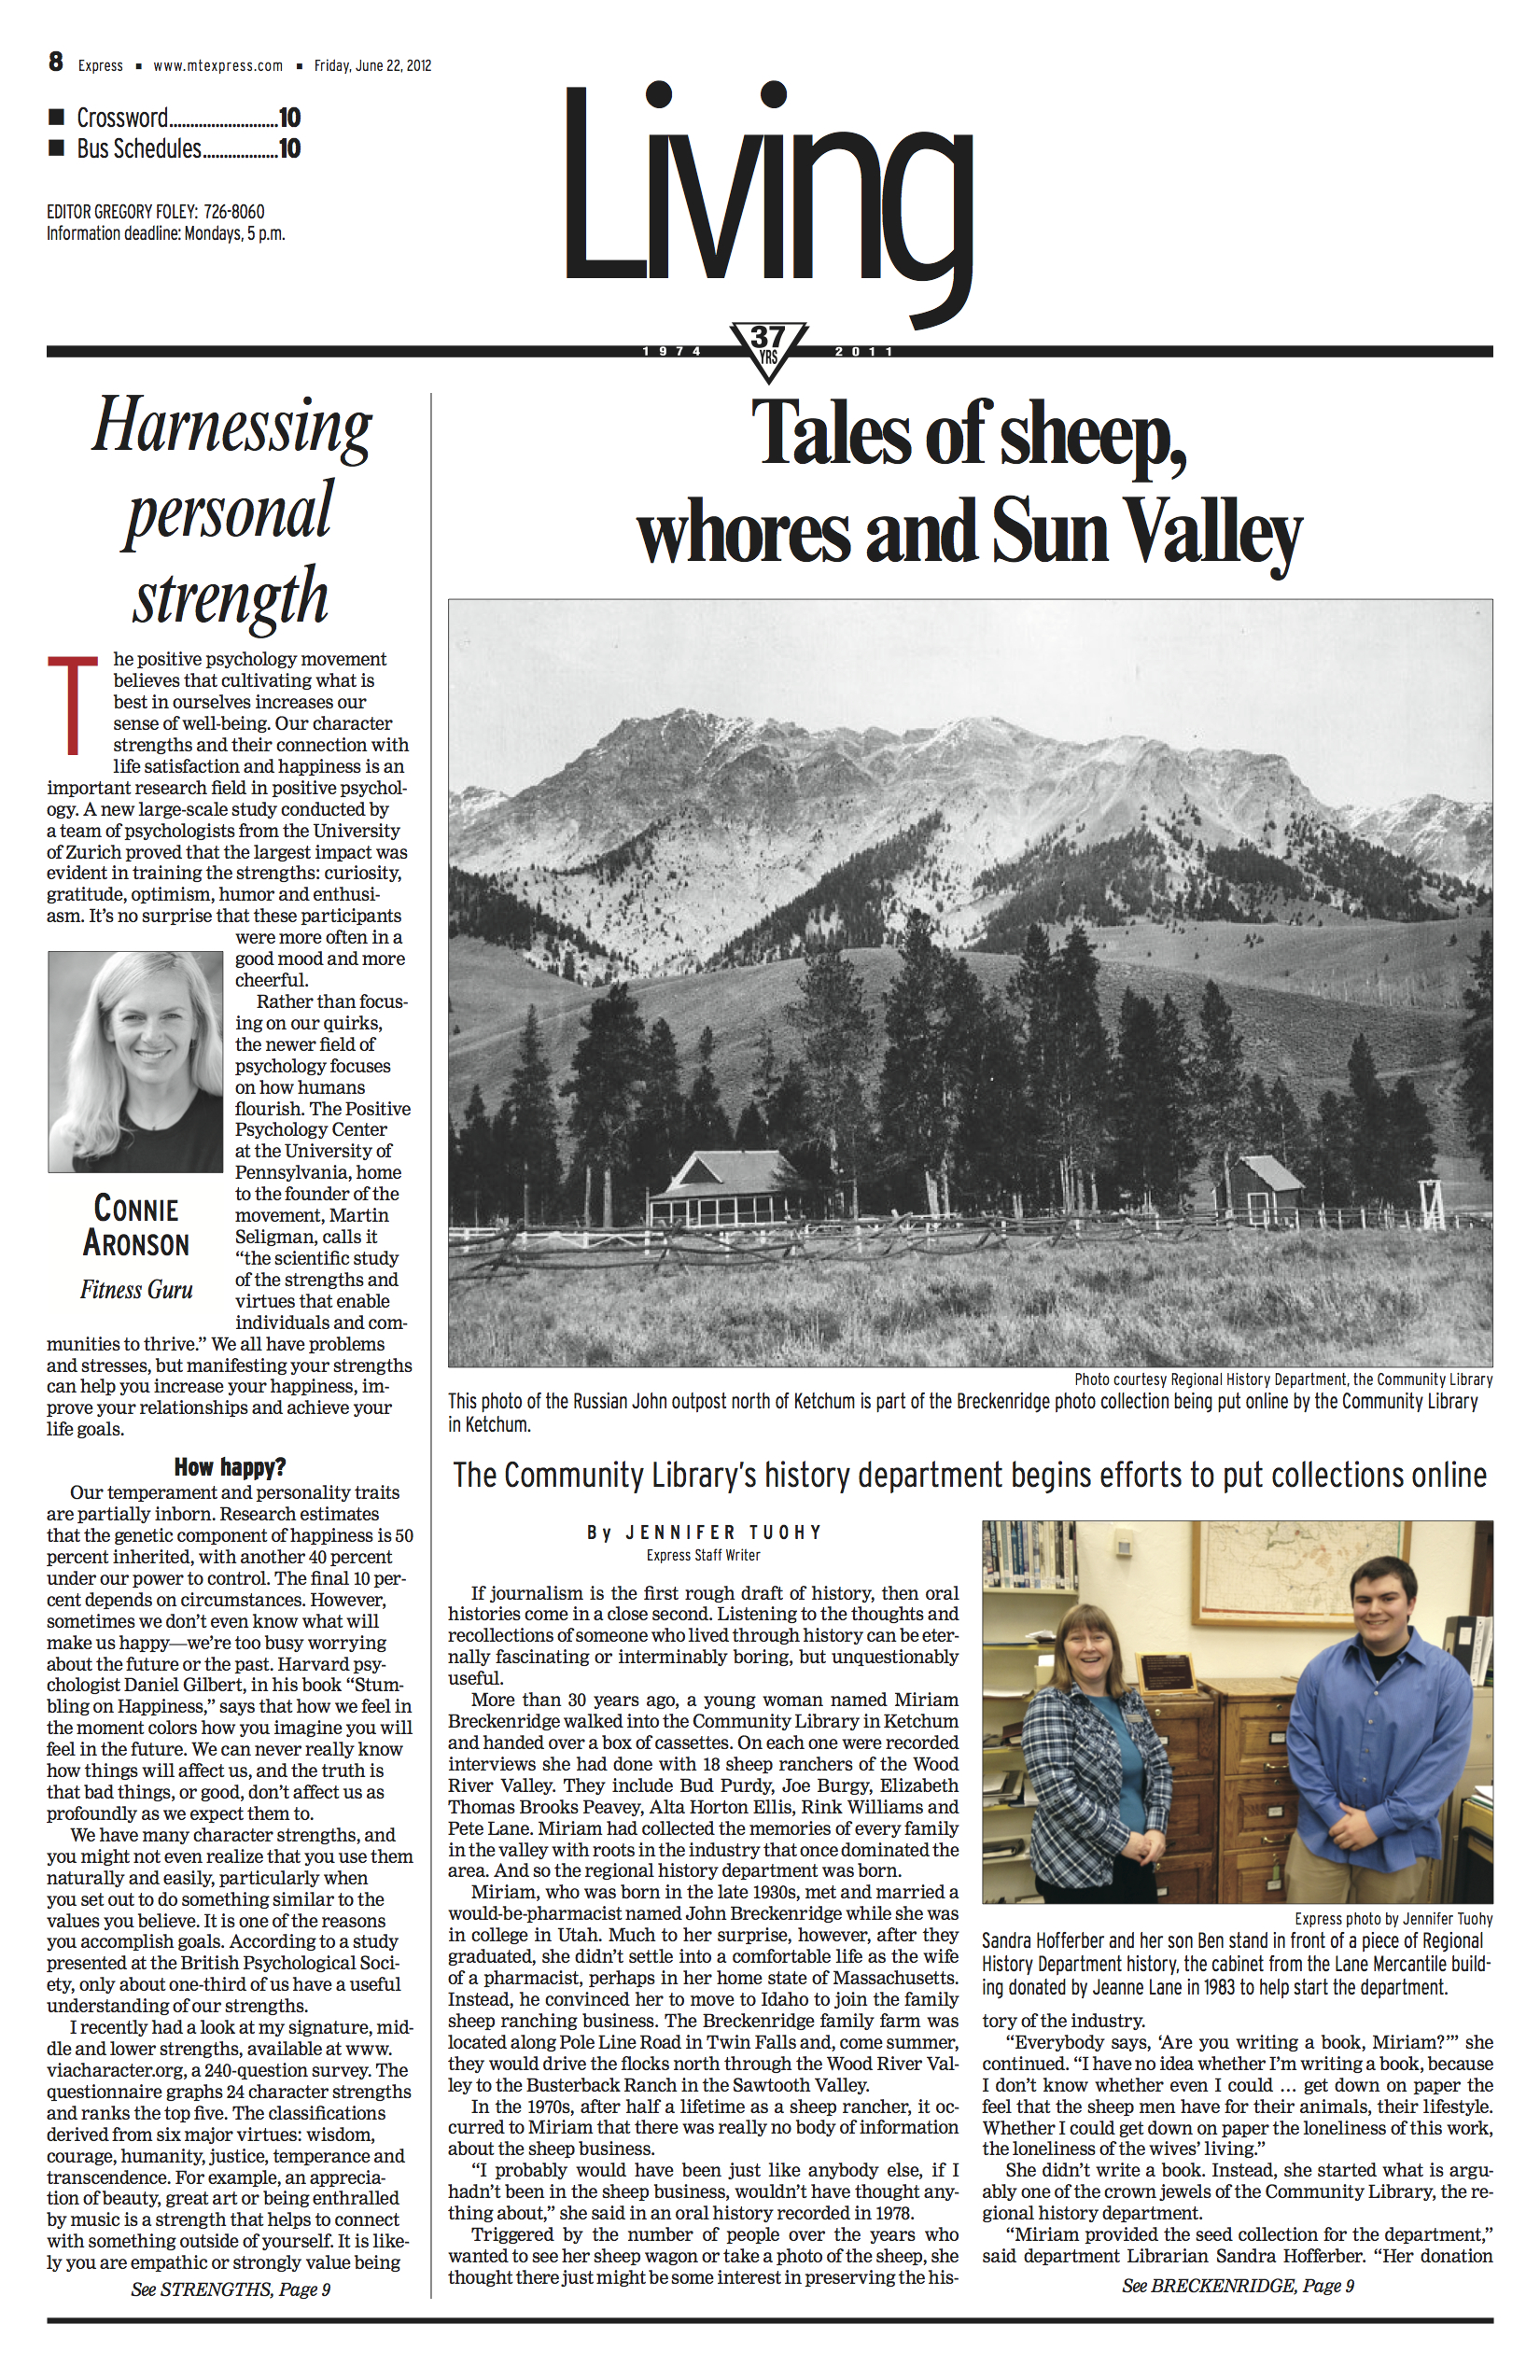 Tales of Sheep, Whores and Sun Valley